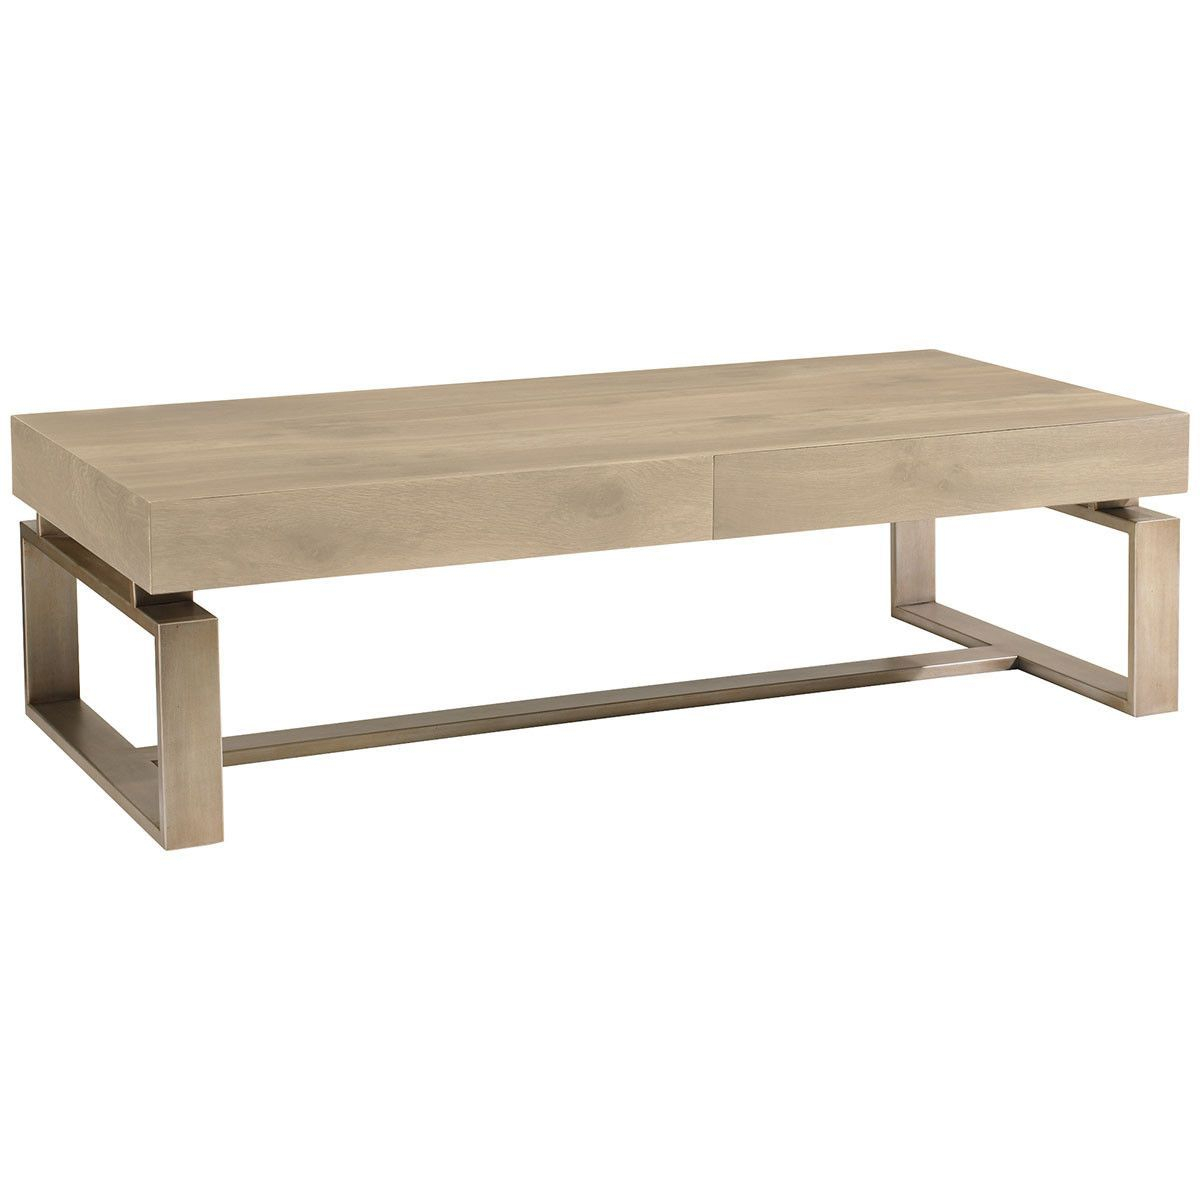 Caracole Artisans Two Drawer Cocktail Table | Sg Living 2 | Pinterest Inside Parsons Travertine Top & Elm Base 48x16 Console Tables (View 17 of 30)